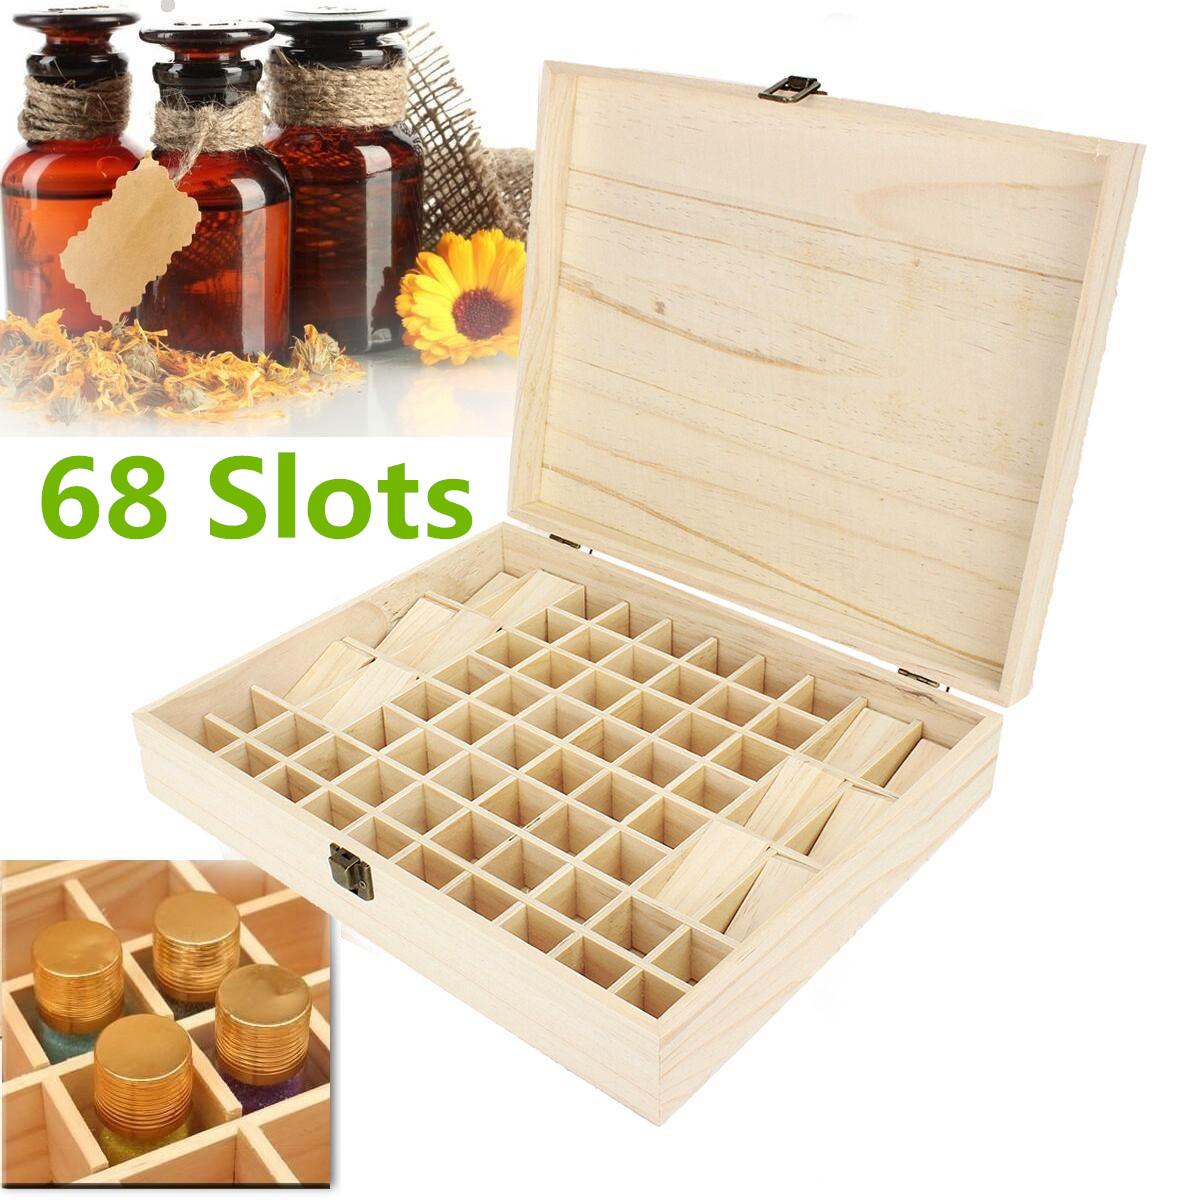 Essential Oil Case Holds 68 Bottles Wooden Storage Box Container Aromatherapy Collecetion Organizer